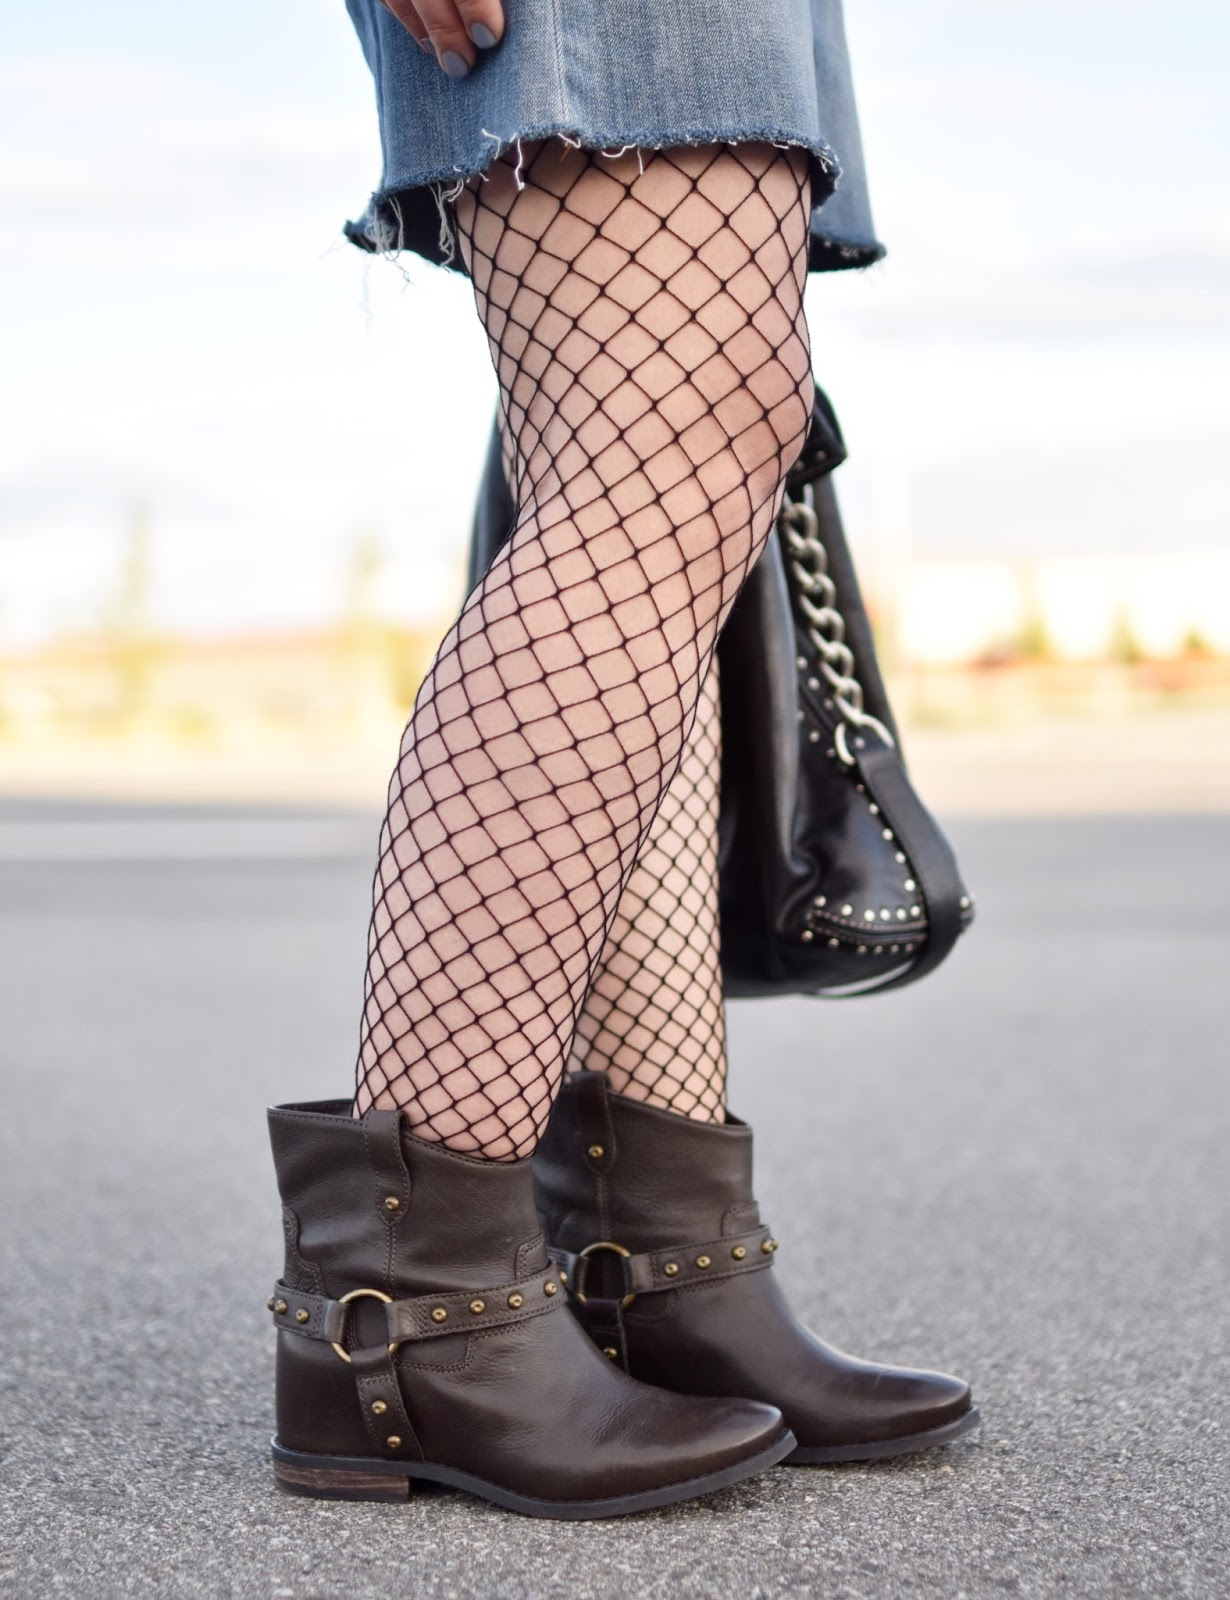 Monika Faulkner outfit inspiration - Enzo Angiolini hidden-wedge booties, fishnet tights